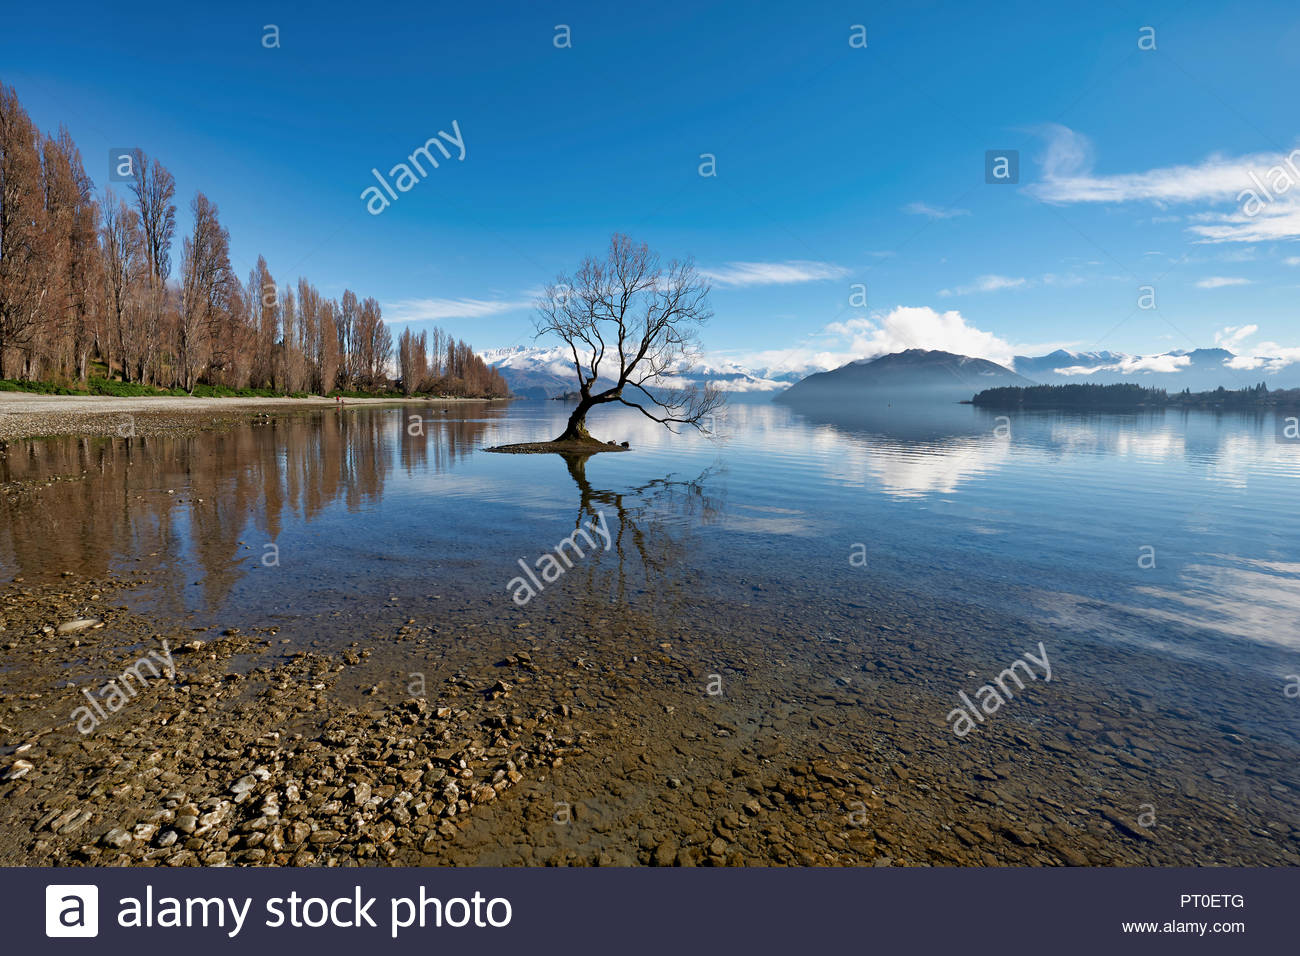 The iconic Wanaka Tree on Lake Wanaka. Otago New Zealand - Stock Image